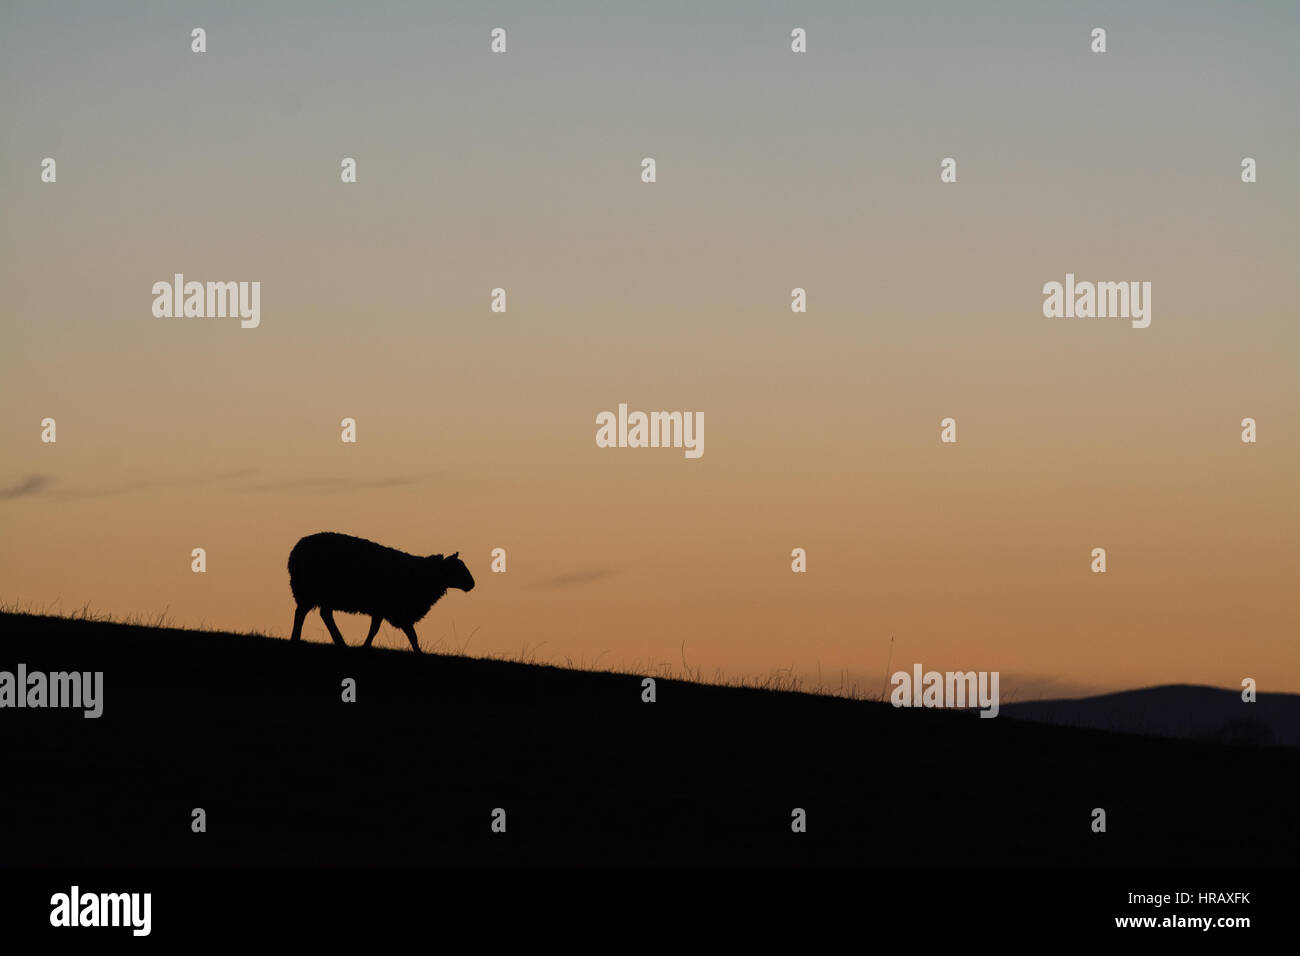 sheep silhouette at sunset - Stock Image